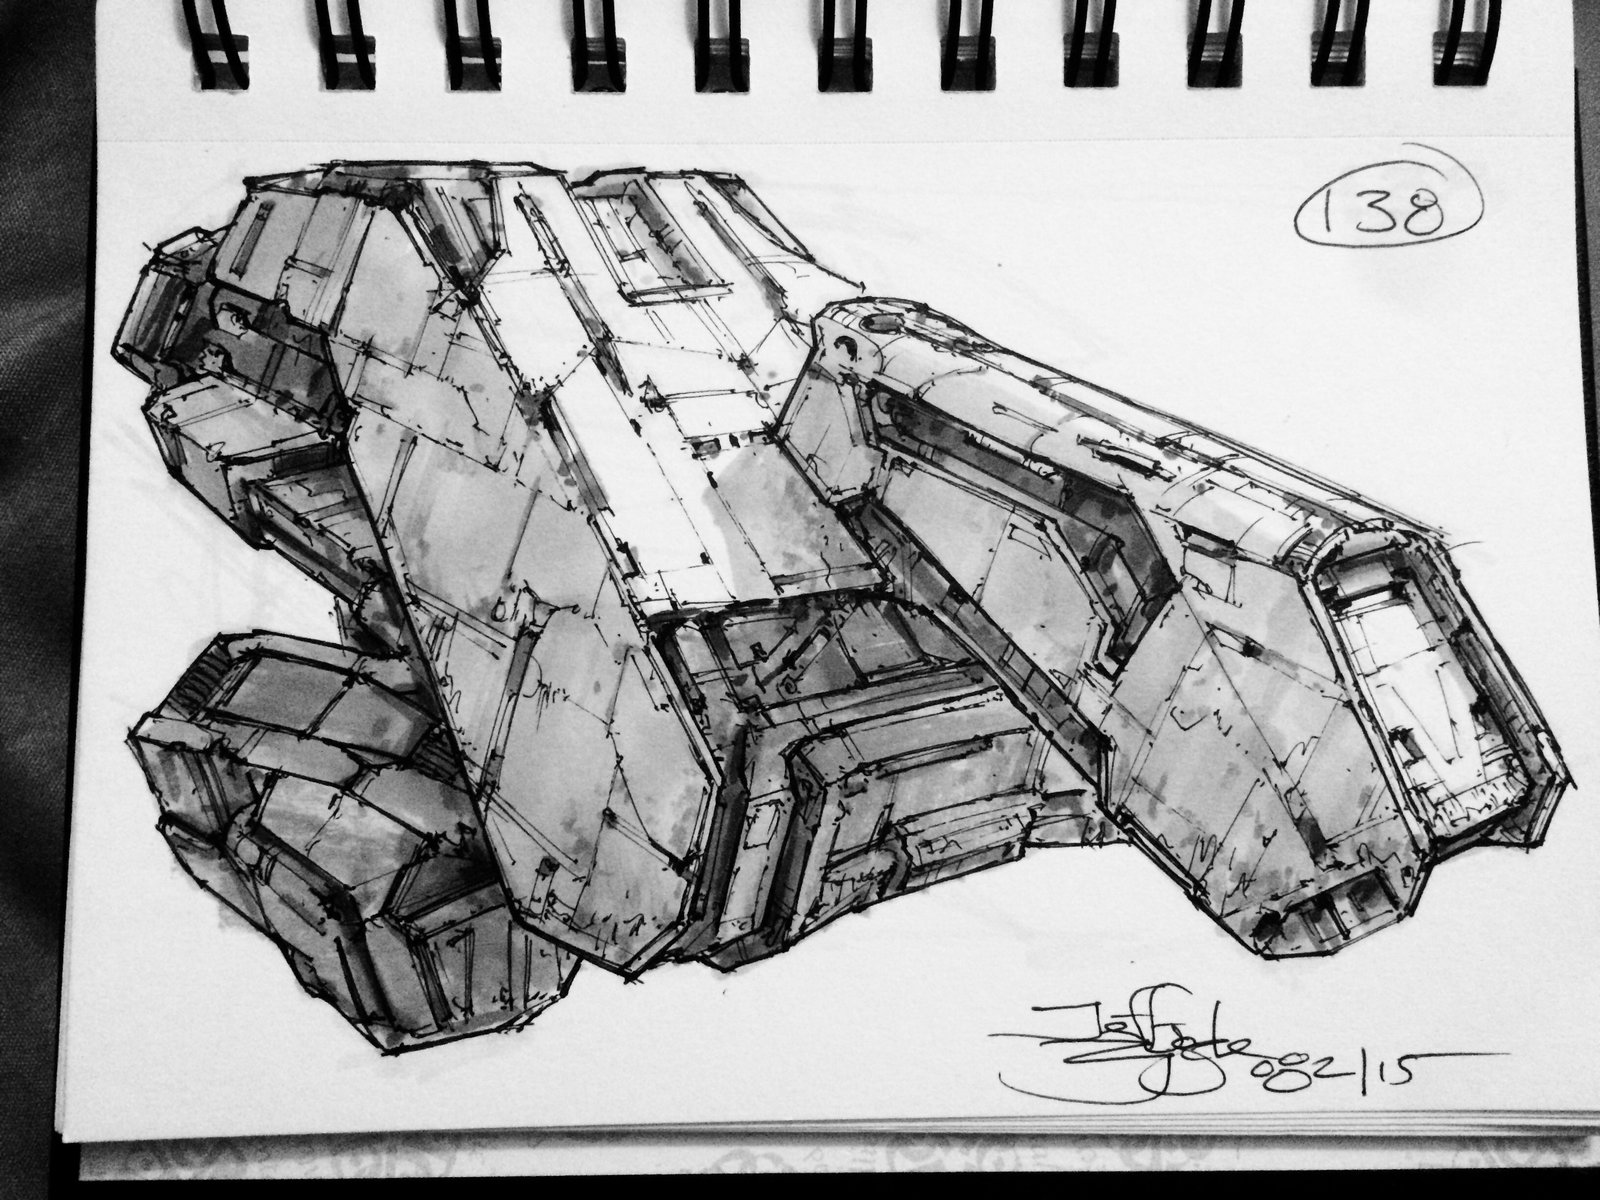 SpaceshipADay 138